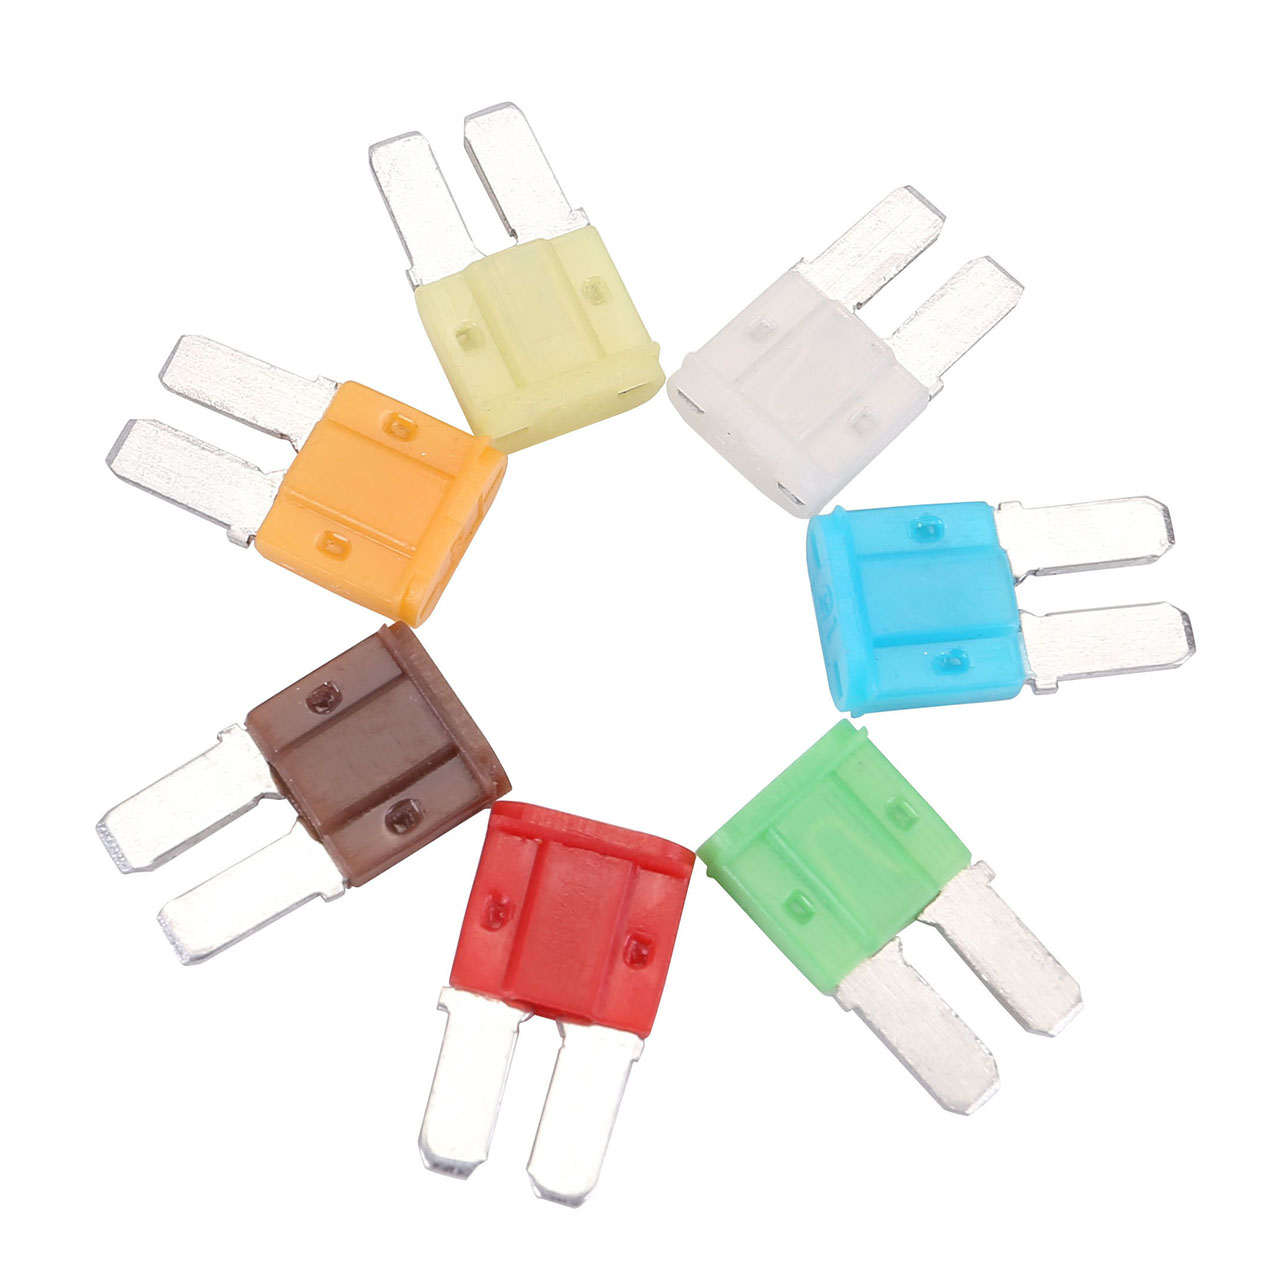 ACBungji Auto Car 5A 7.5A 10A 15A 20A 25A 30A ATO ATC Micro II 2 Blade Fuse Assortment 35 Pieces